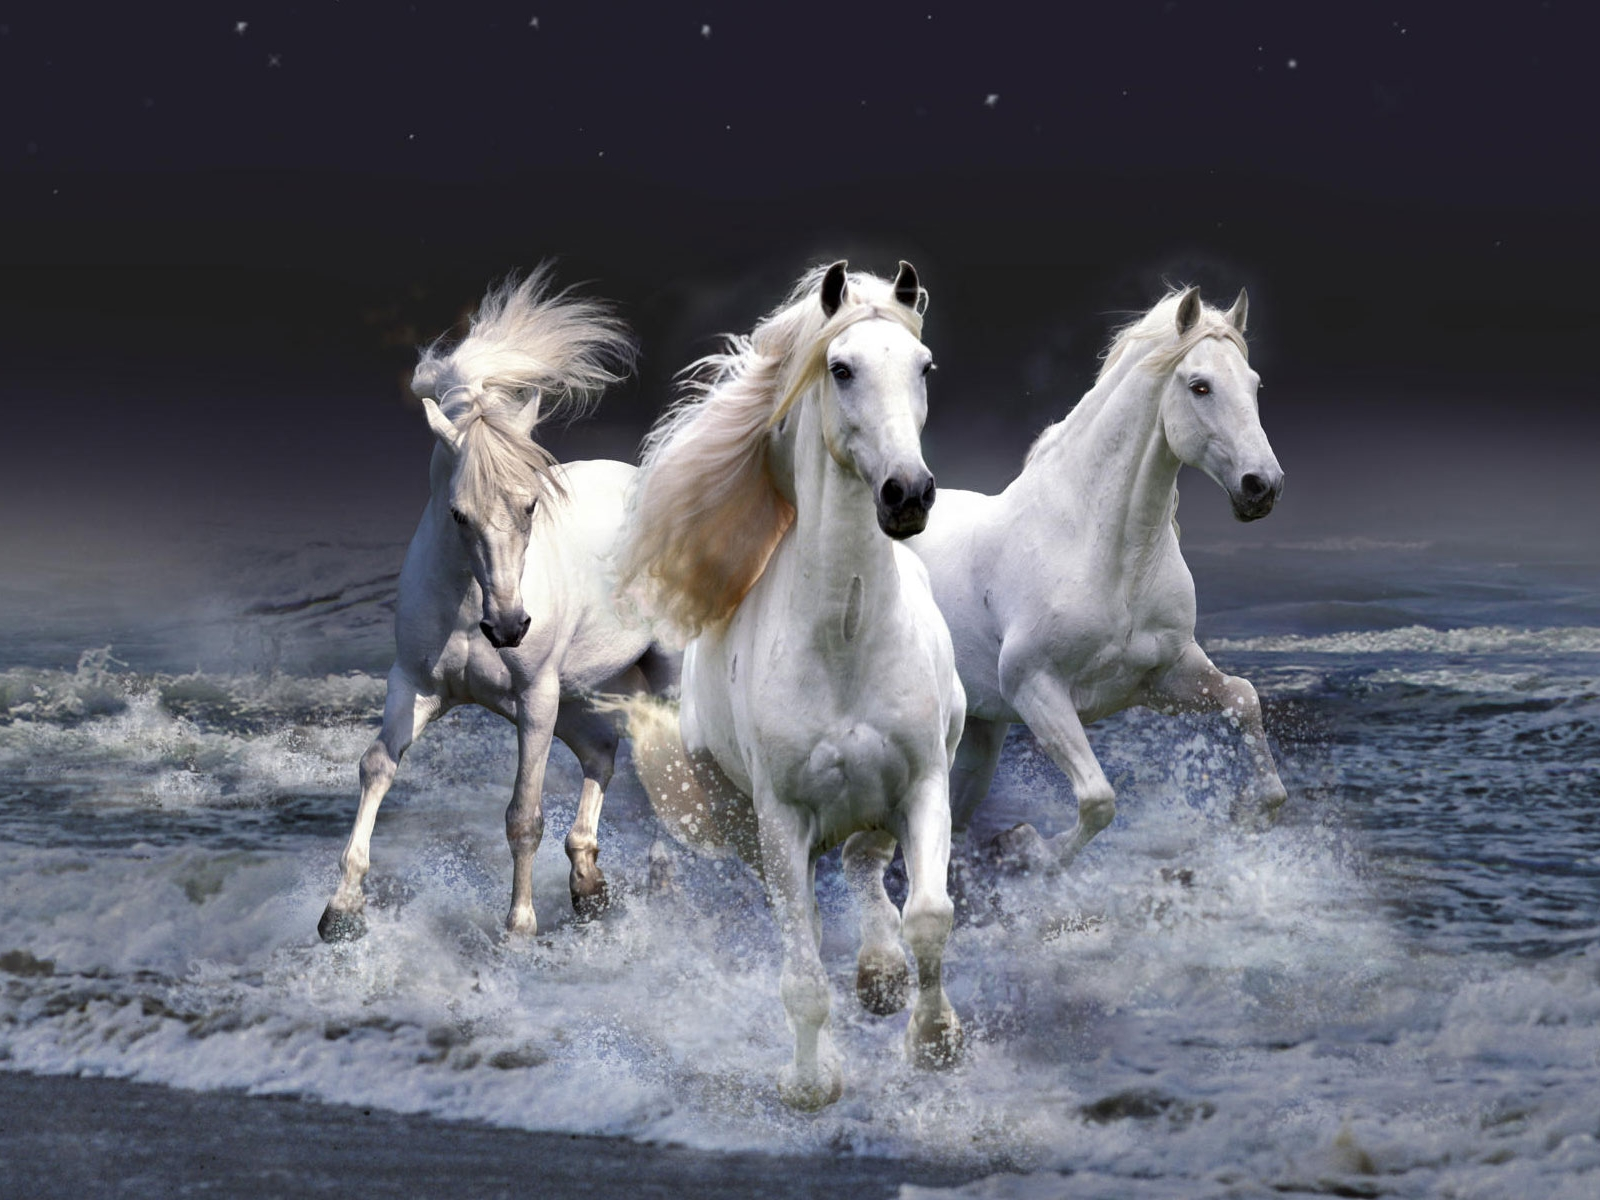 Fantastic   Wallpaper Horse Ultra Hd - wild+horses+wallpapers+14  Trends_6610082.jpg